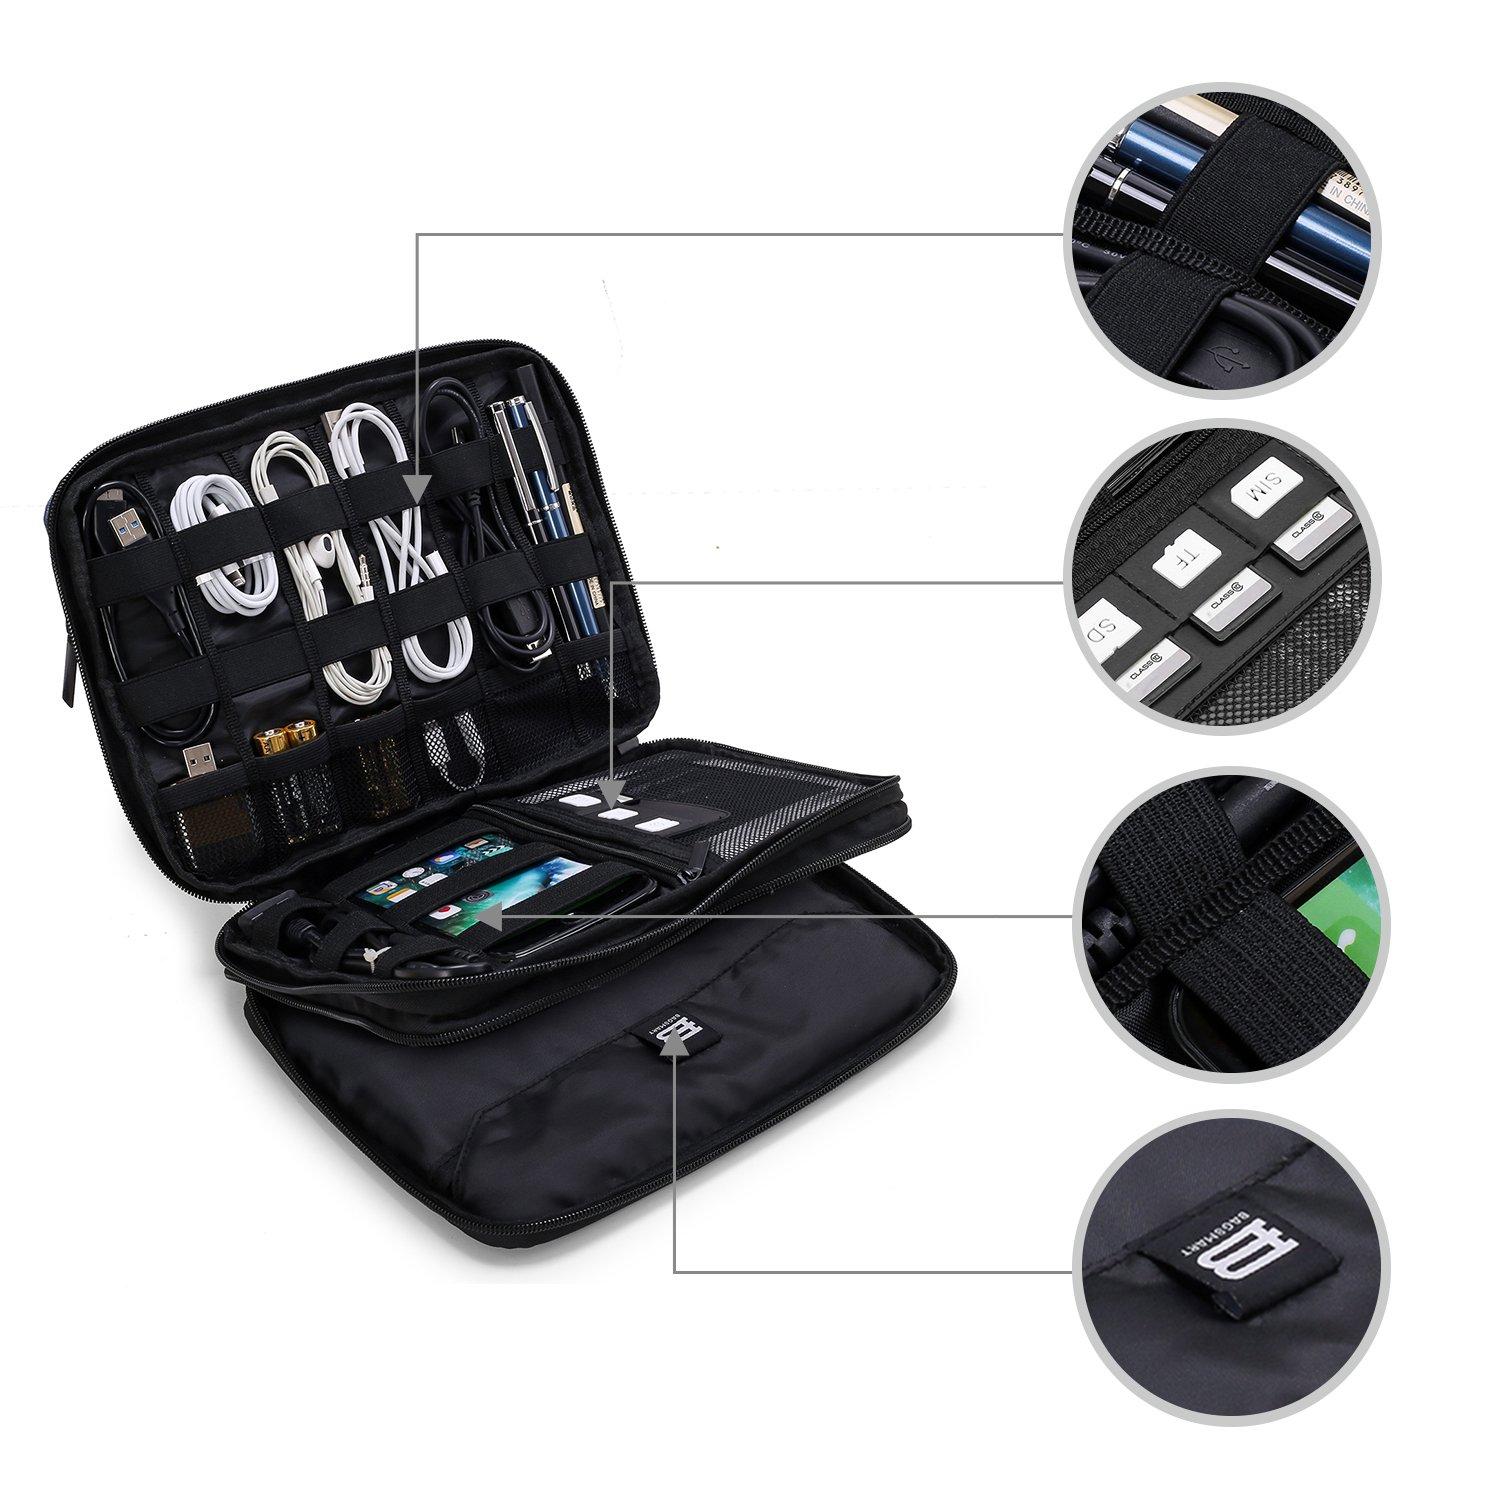 BAGSMART 3-layer Travel Electronics Cable Organizer Bag for 9.7'' iPad, Hard Drives, Cables, Charger, Kindle, Blue by BAGSMART (Image #5)